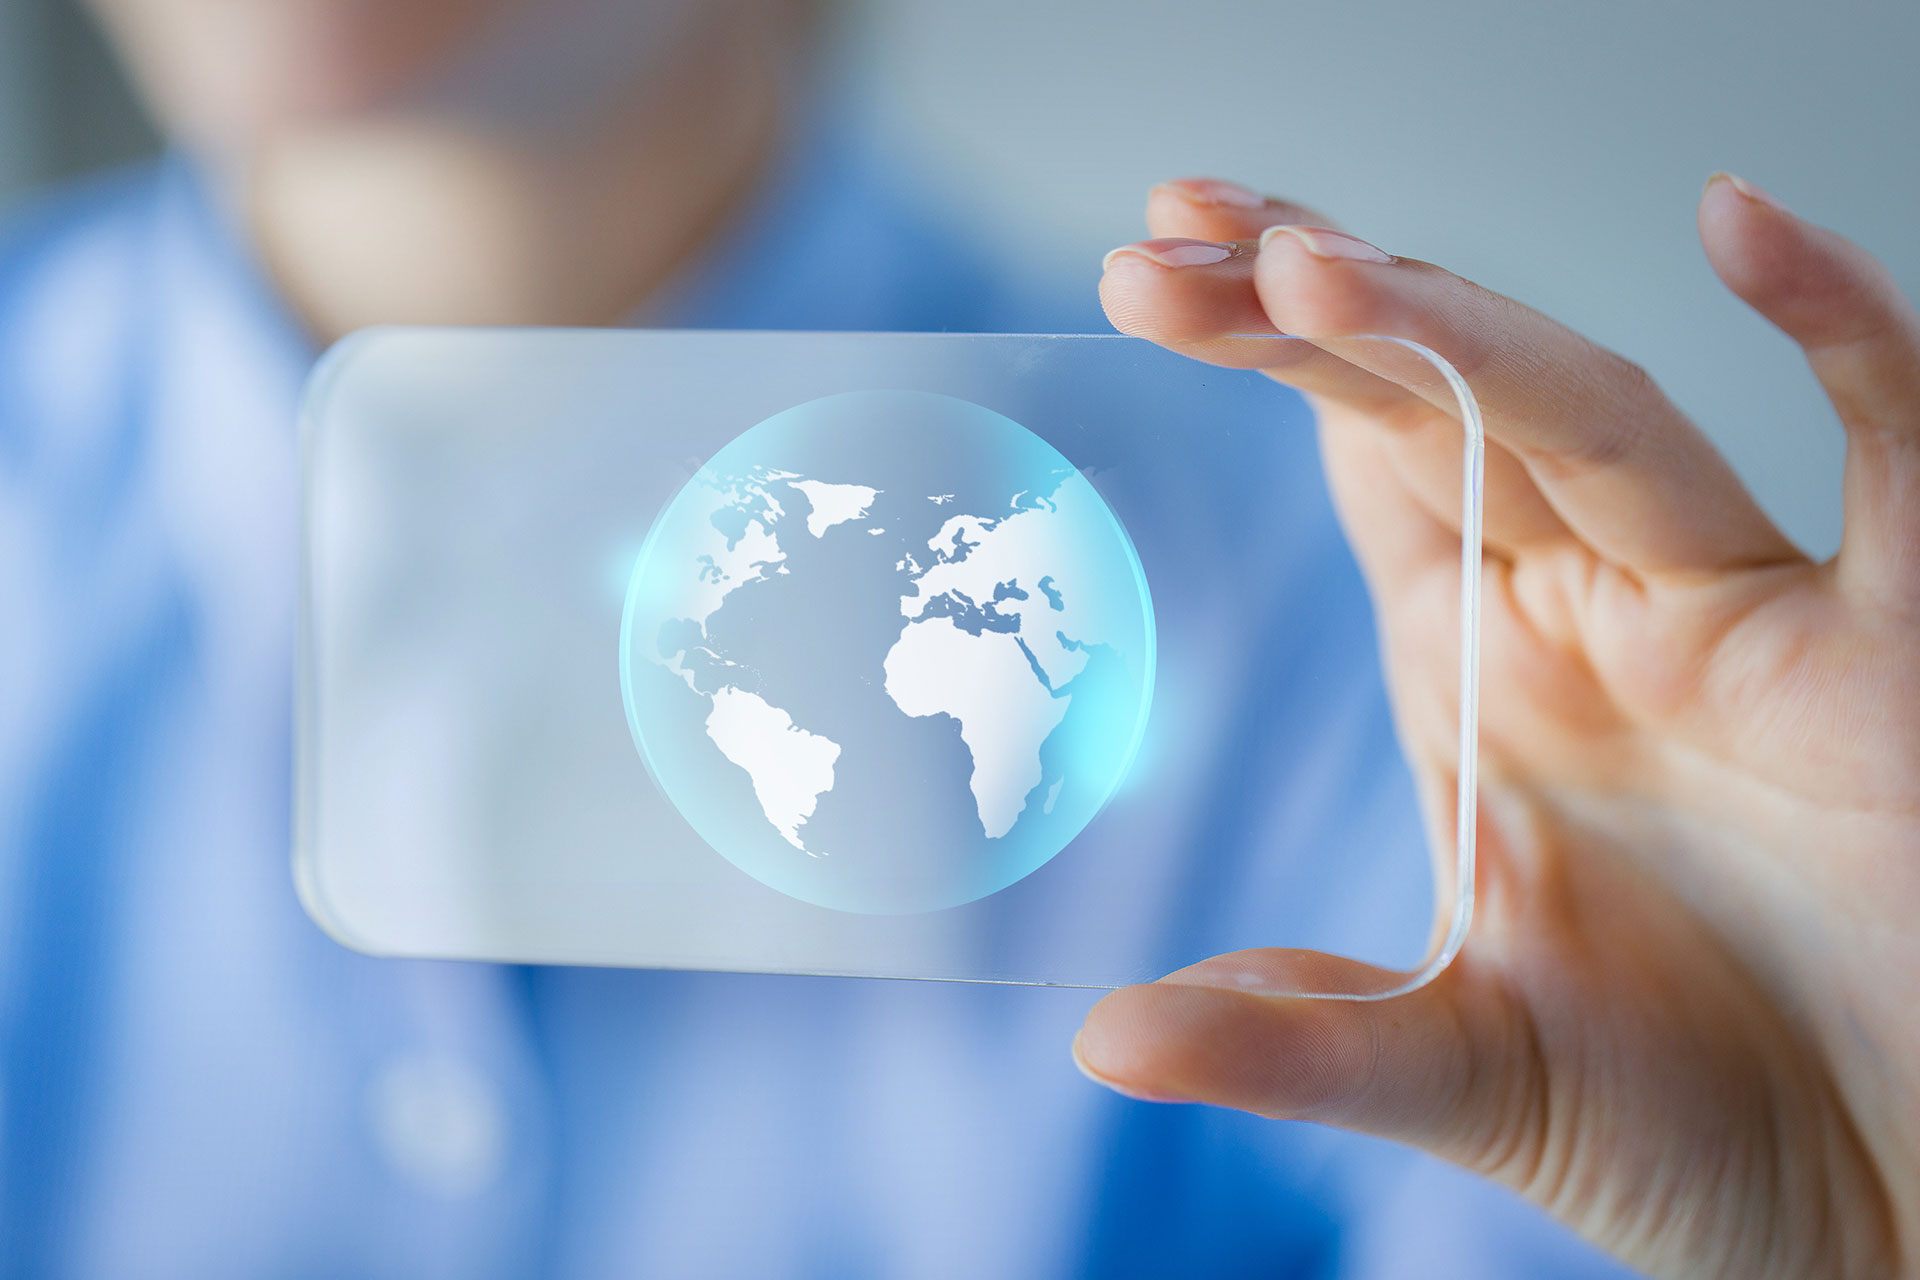 Person holding up a clear screen with a globe